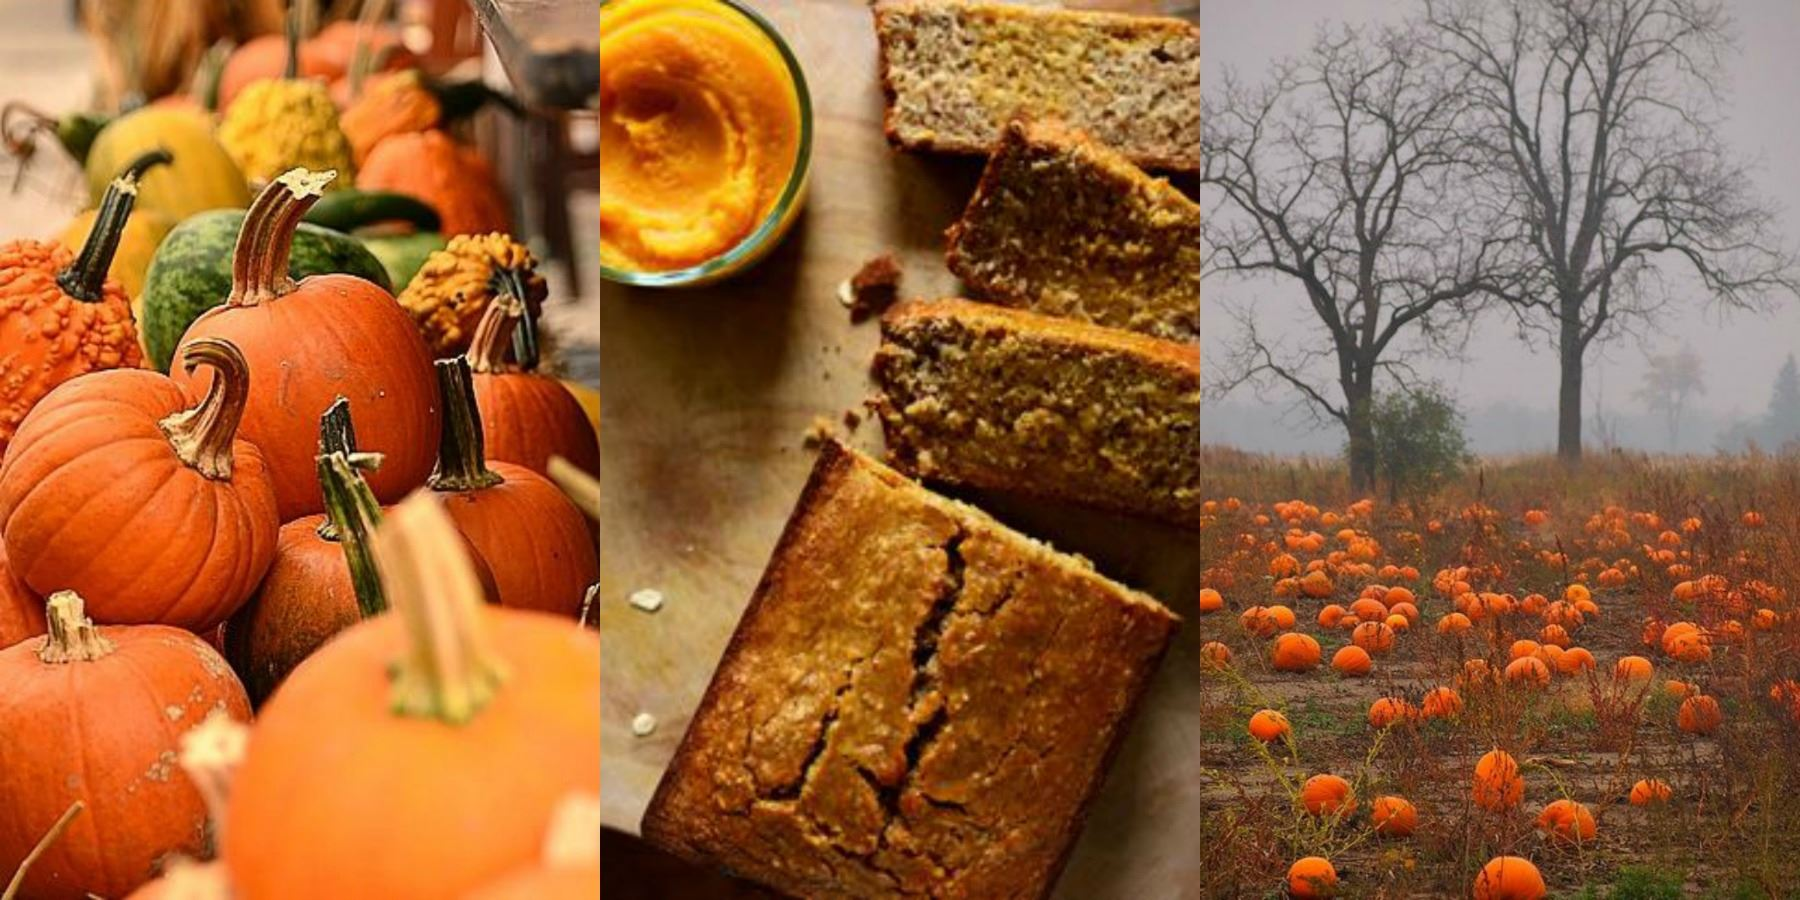 Burlanes Interiors - Pumpkin Recipe and Bakeware Giveaway